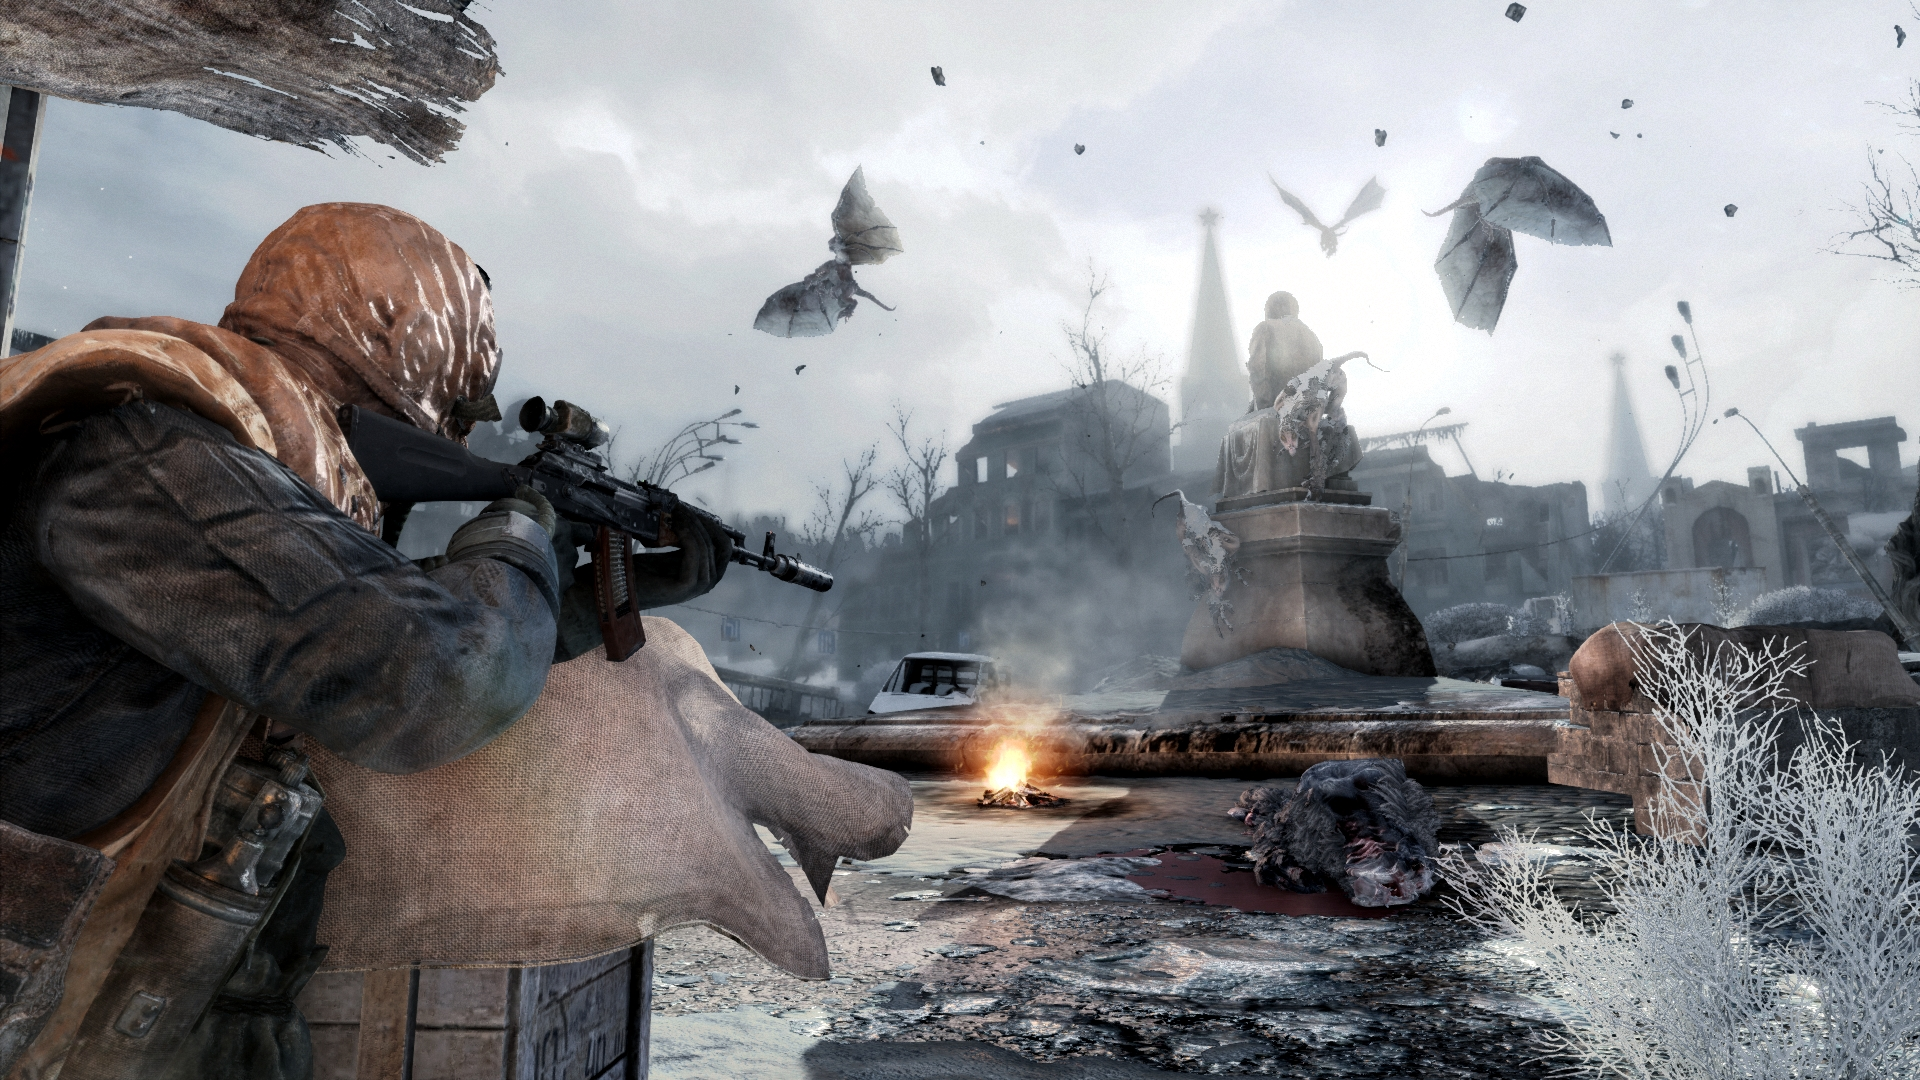 Metro Redux for Nintendo Switch Leaked by Portuguese Retailer